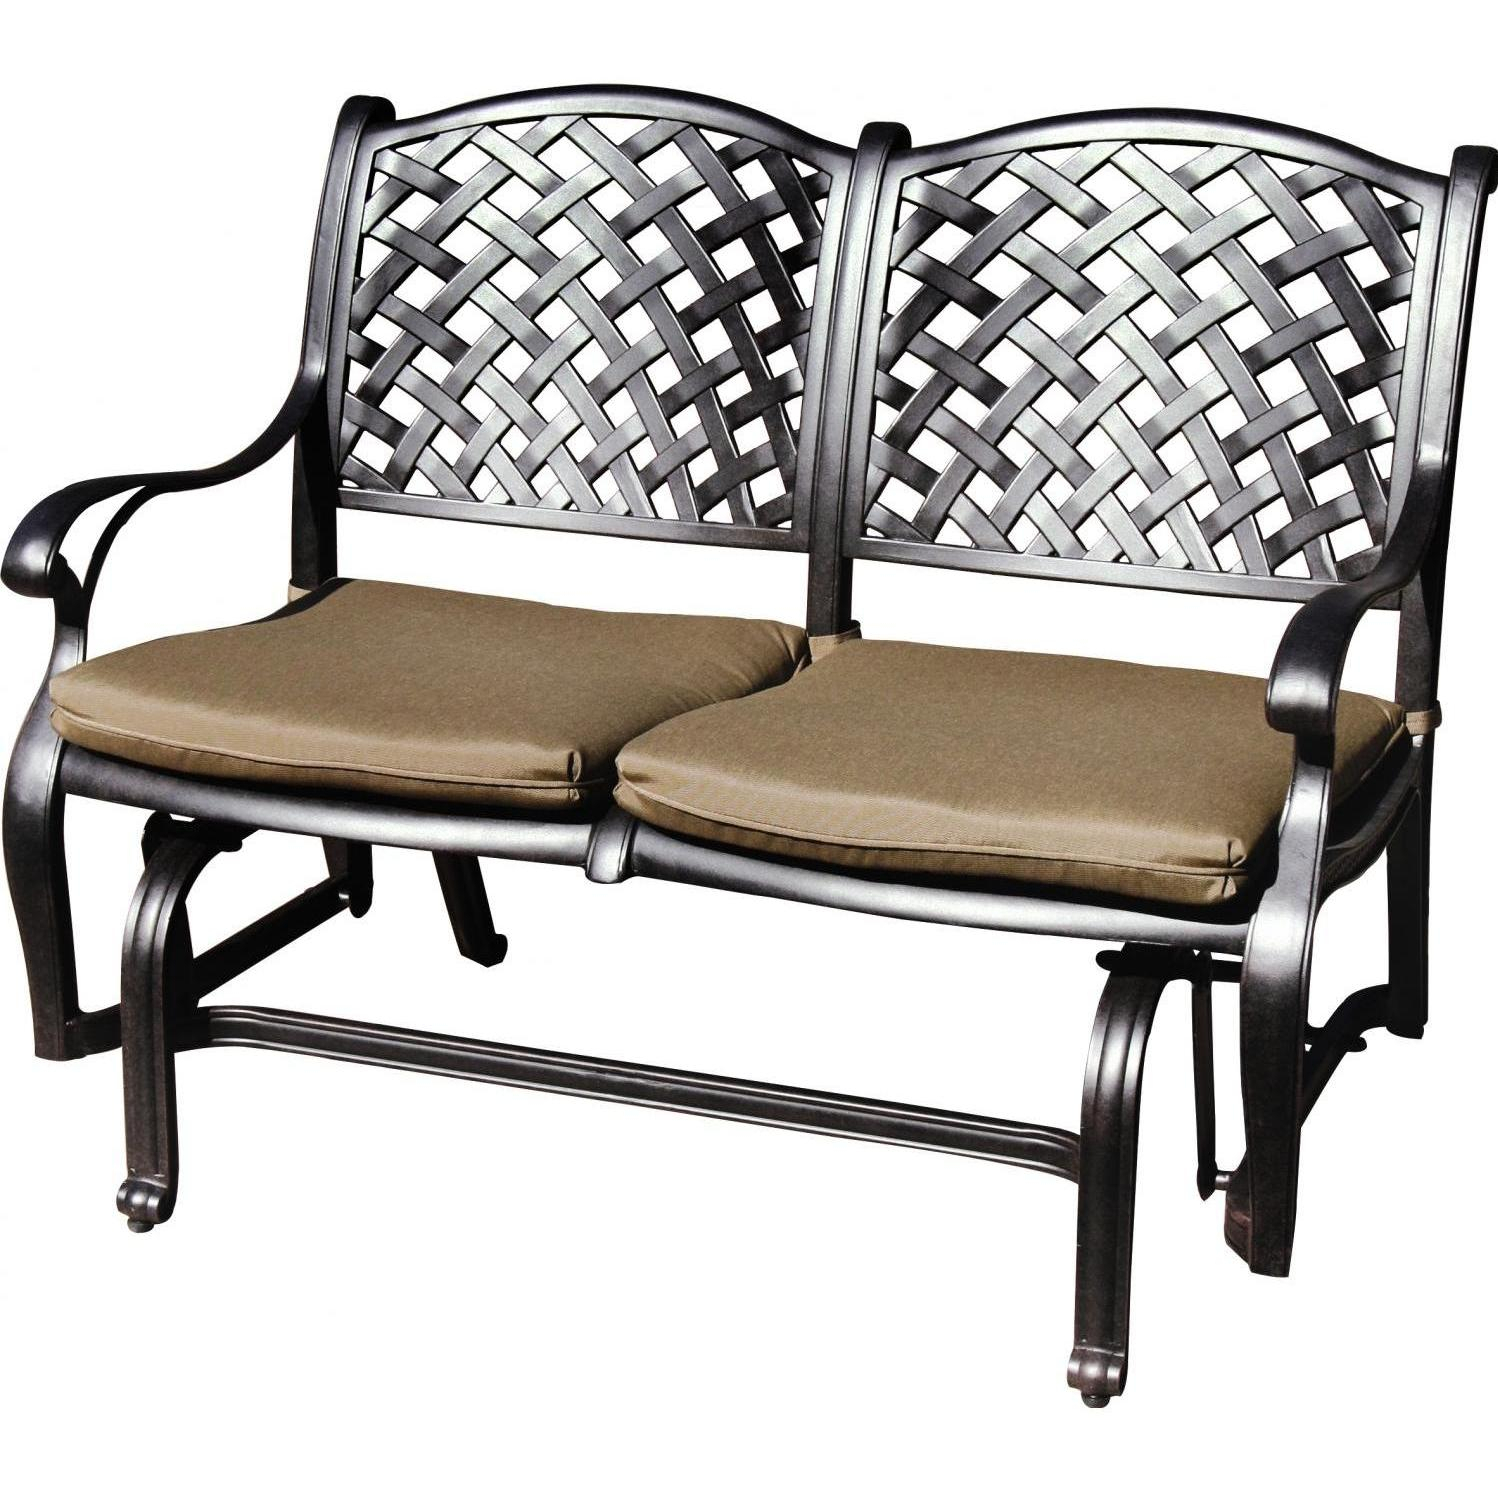 Darlee Nassau Cast Aluminum Patio Bench Glider | Darlee Intended For Double Glider Benches With Cushion (Image 6 of 25)